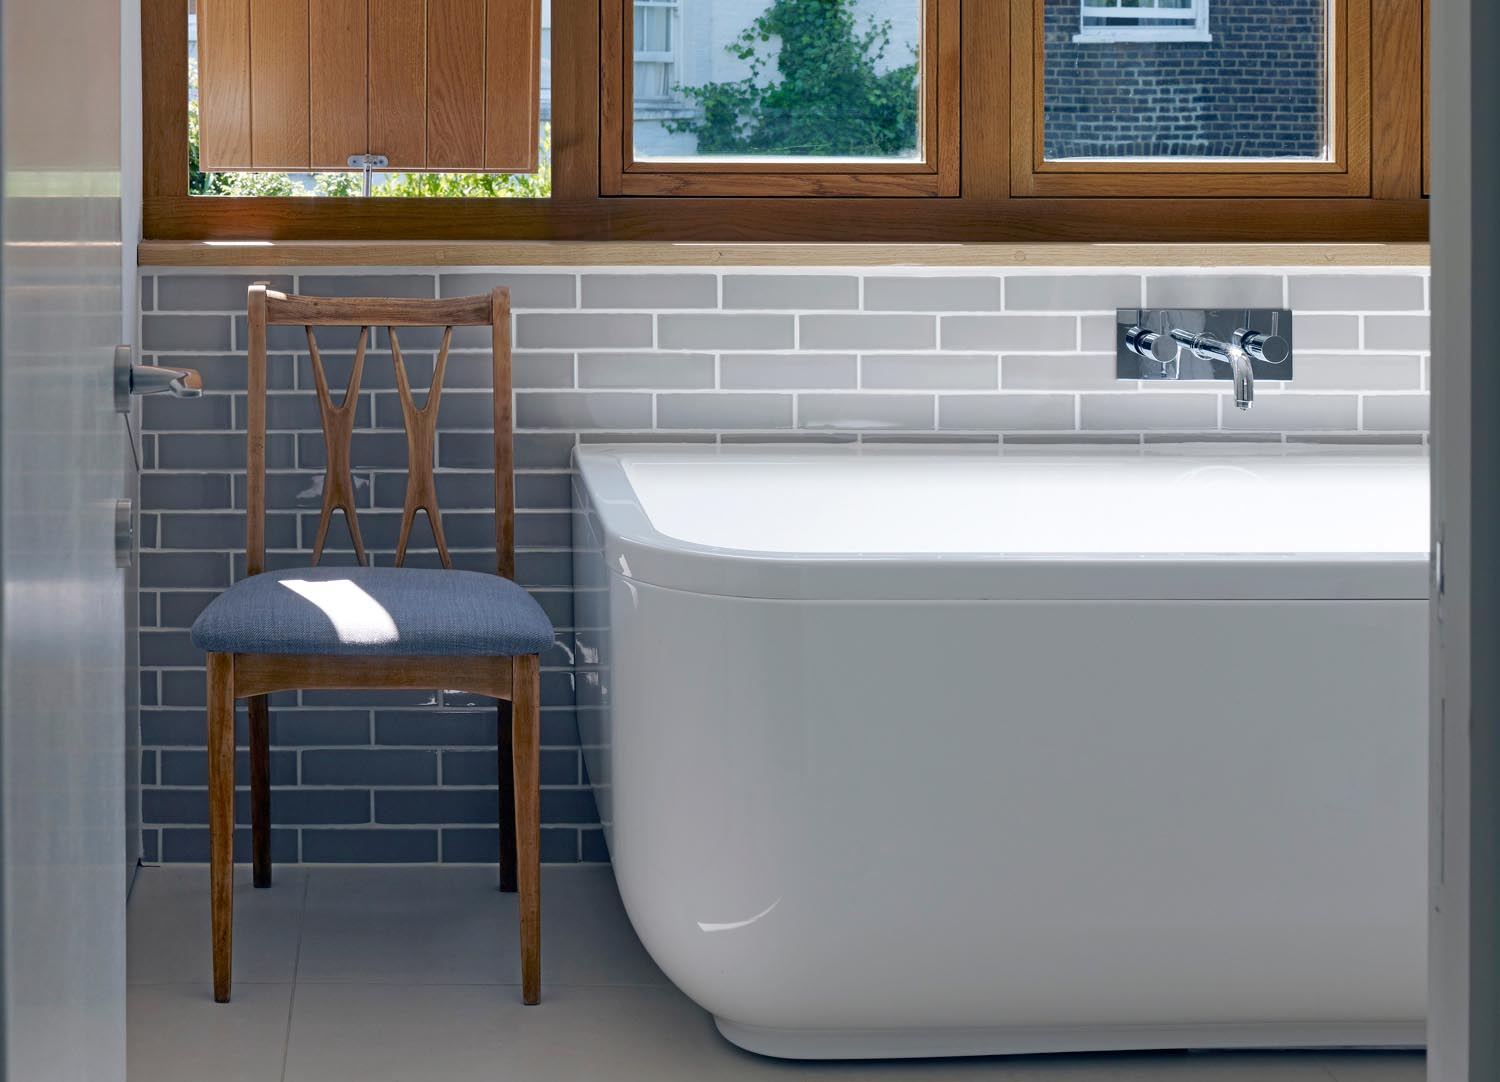 Jill Scholes Interior design, mews house, master bathroom detail with bath and view to window